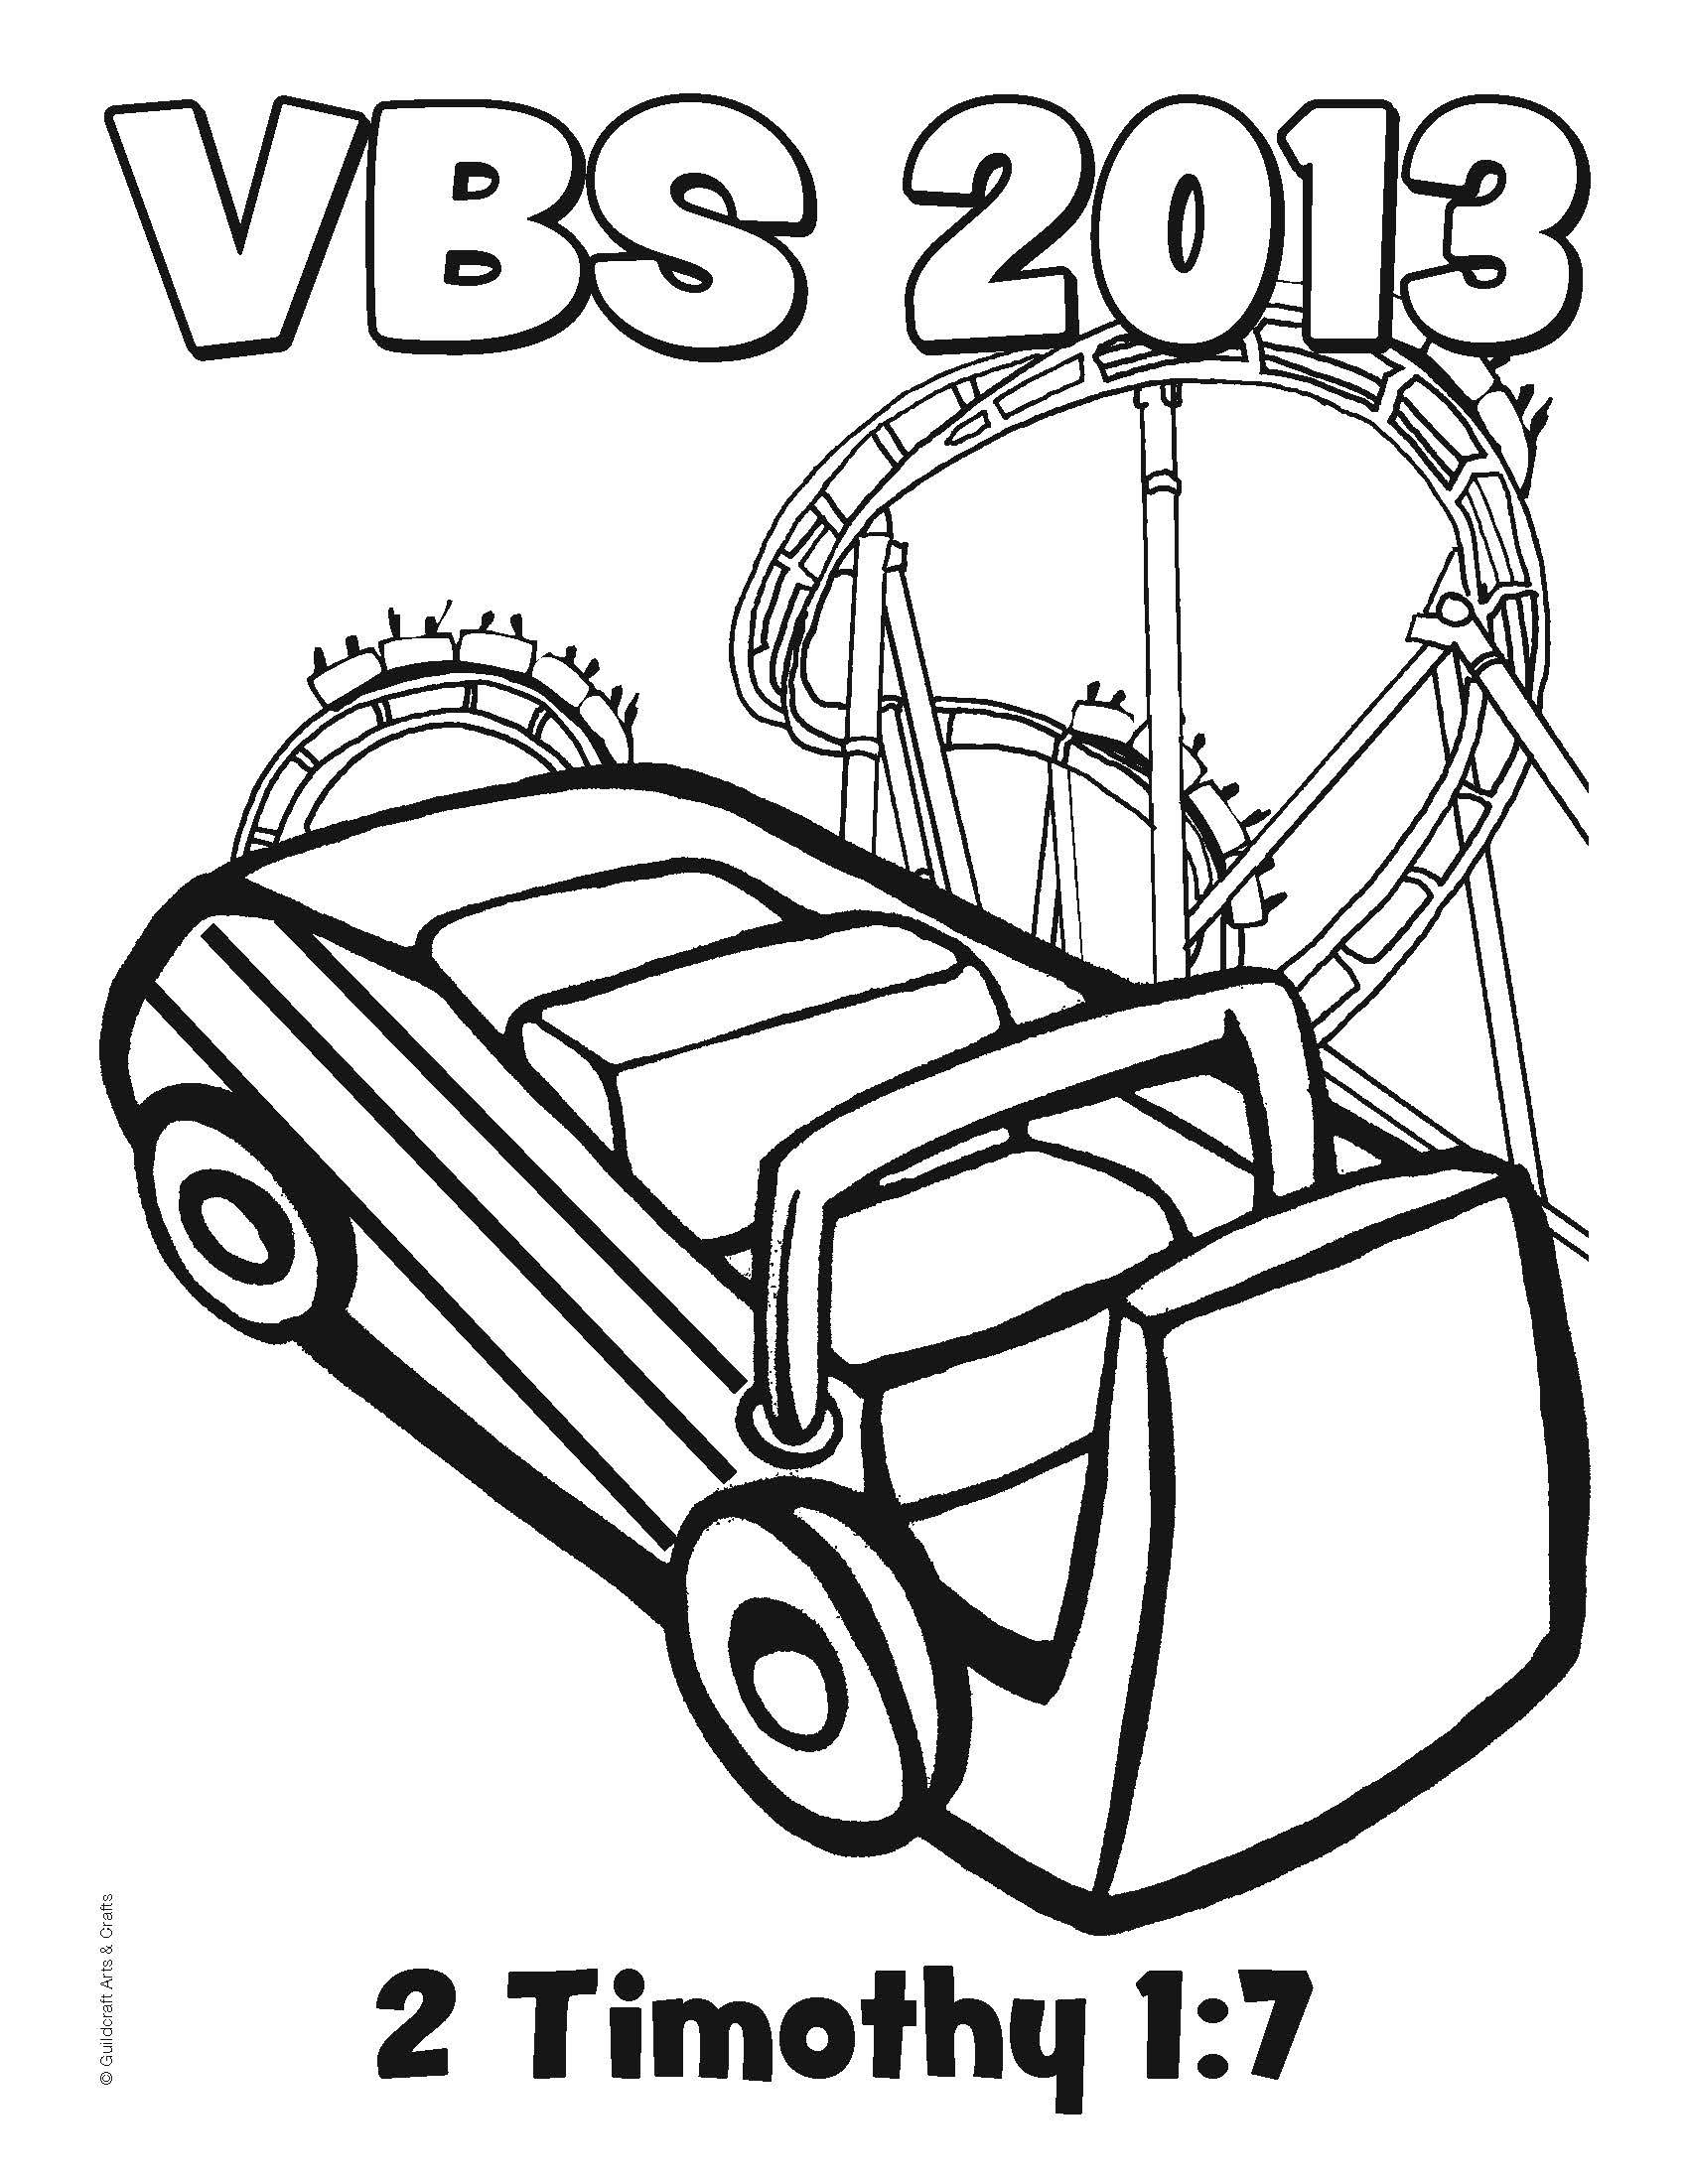 Free Roller Coaster VBS 2013 Coloring Sheet From Guildcraft Arts Crafts